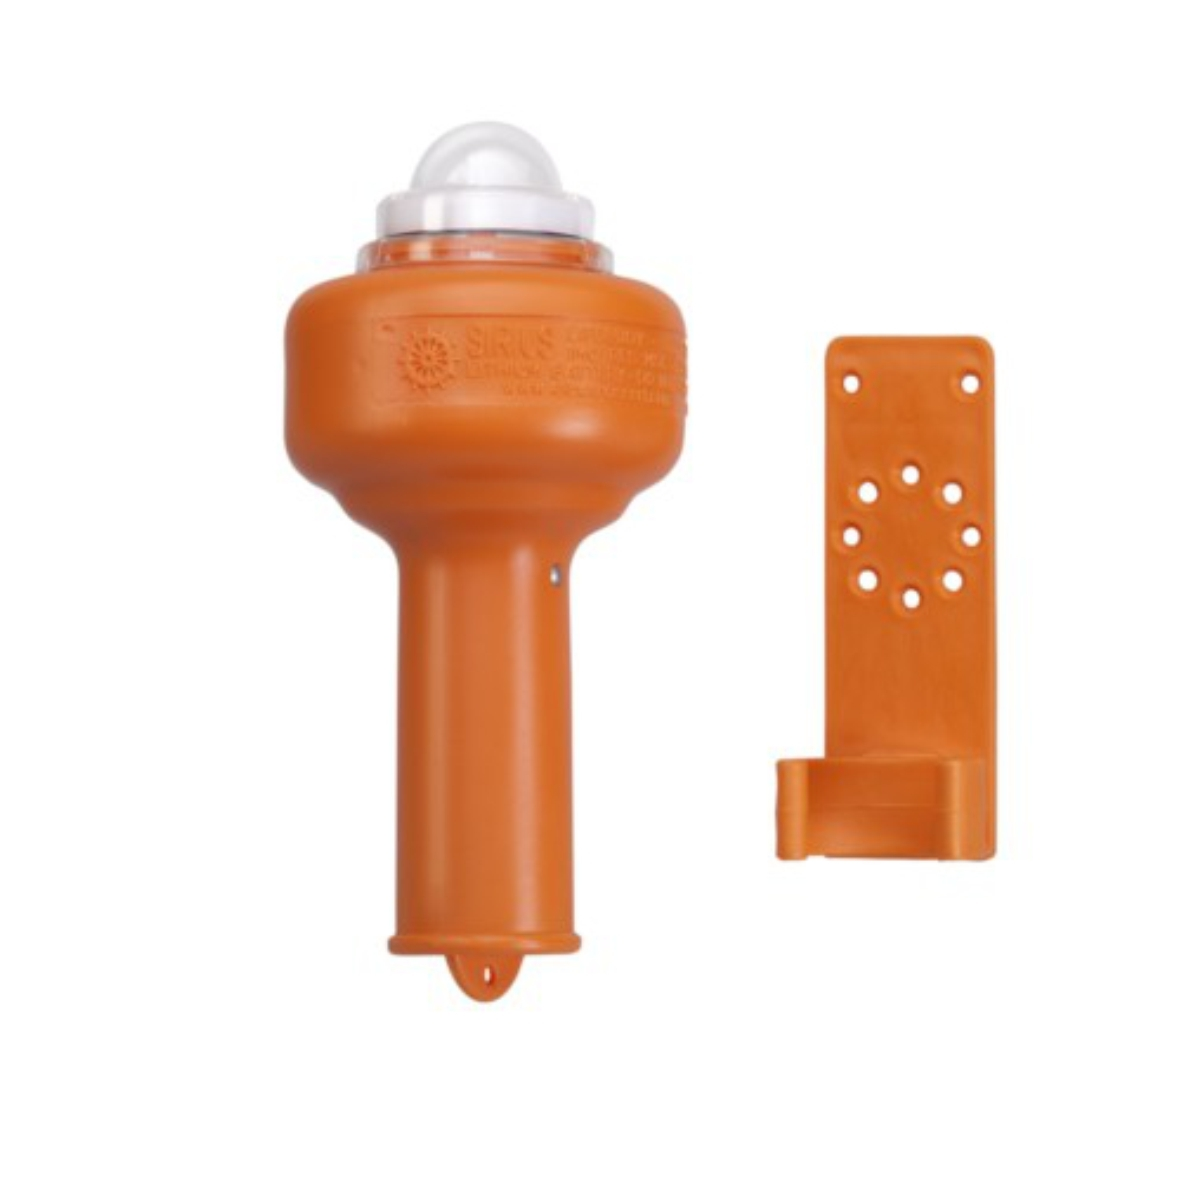 Floating LED-type lithium lifebuoy light